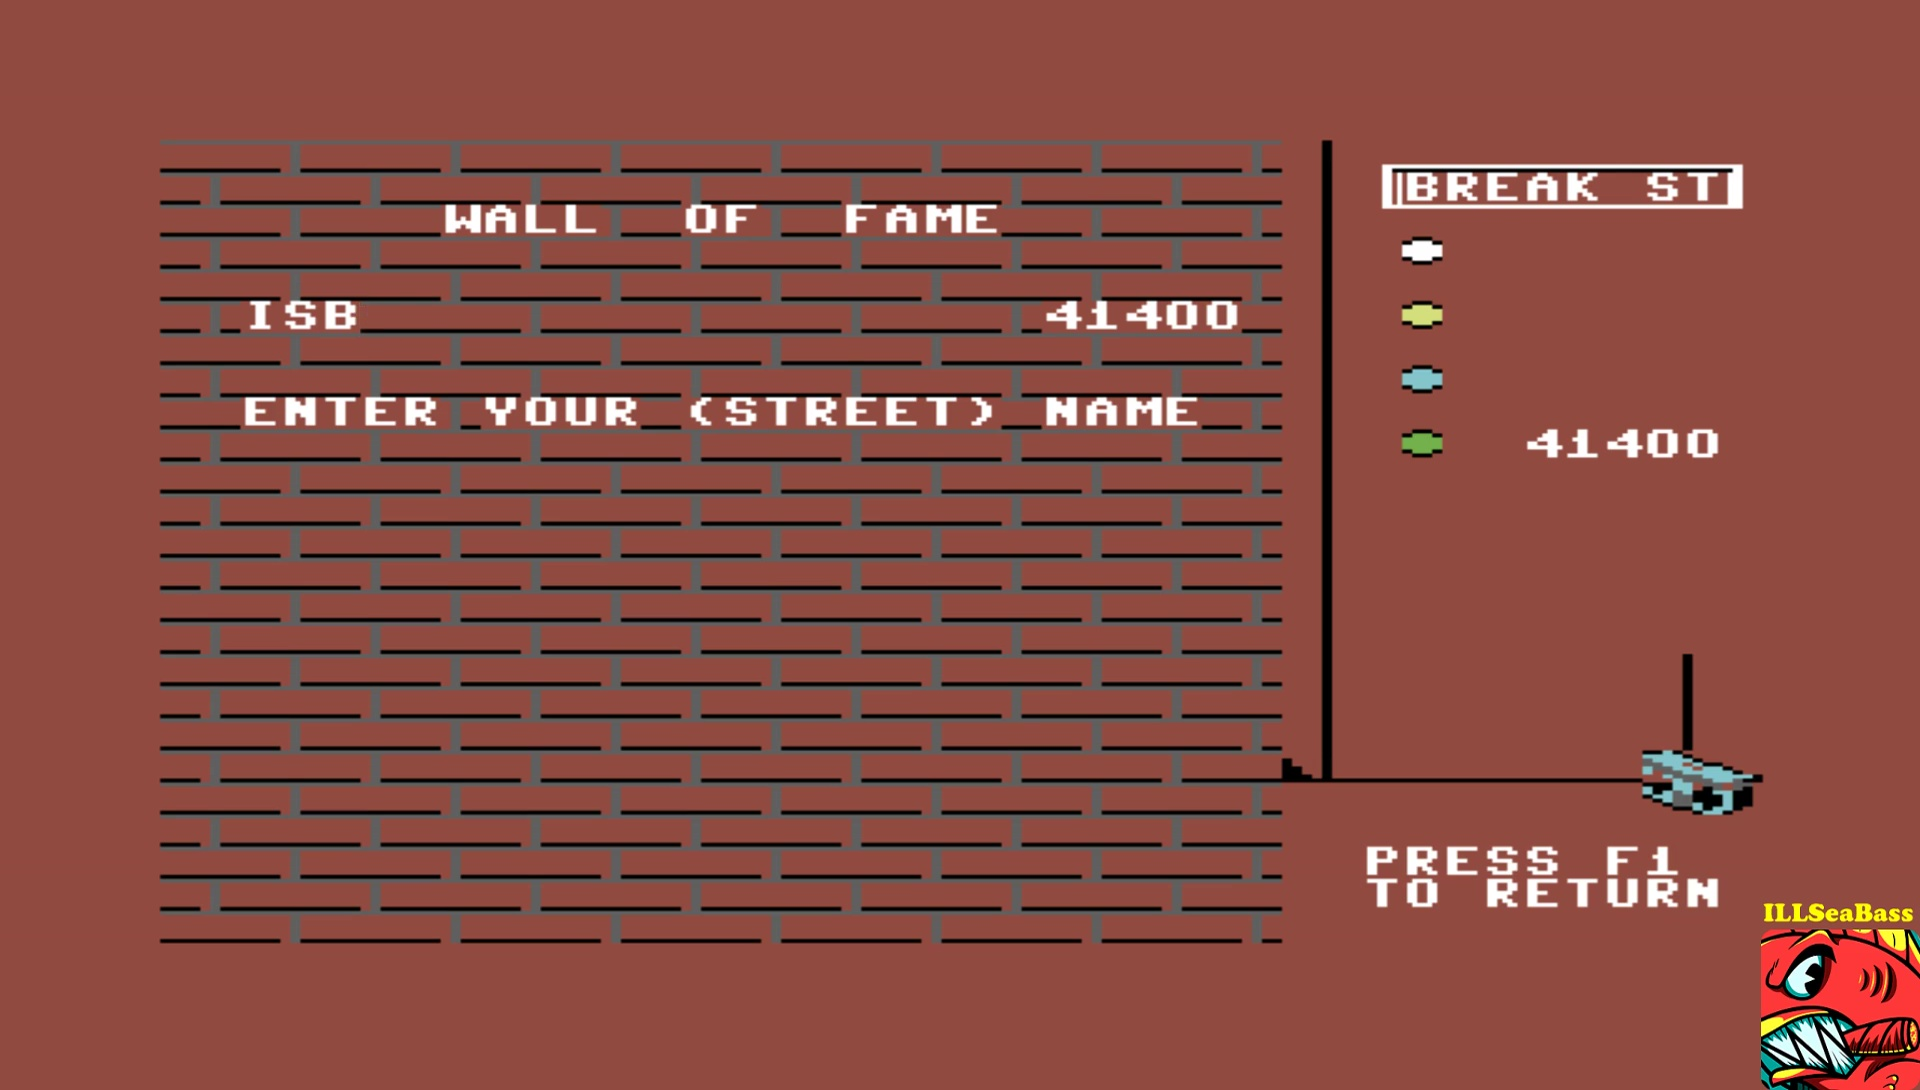 ILLSeaBass: Break Street (Commodore 64 Emulated) 41,400 points on 2017-05-19 18:54:01